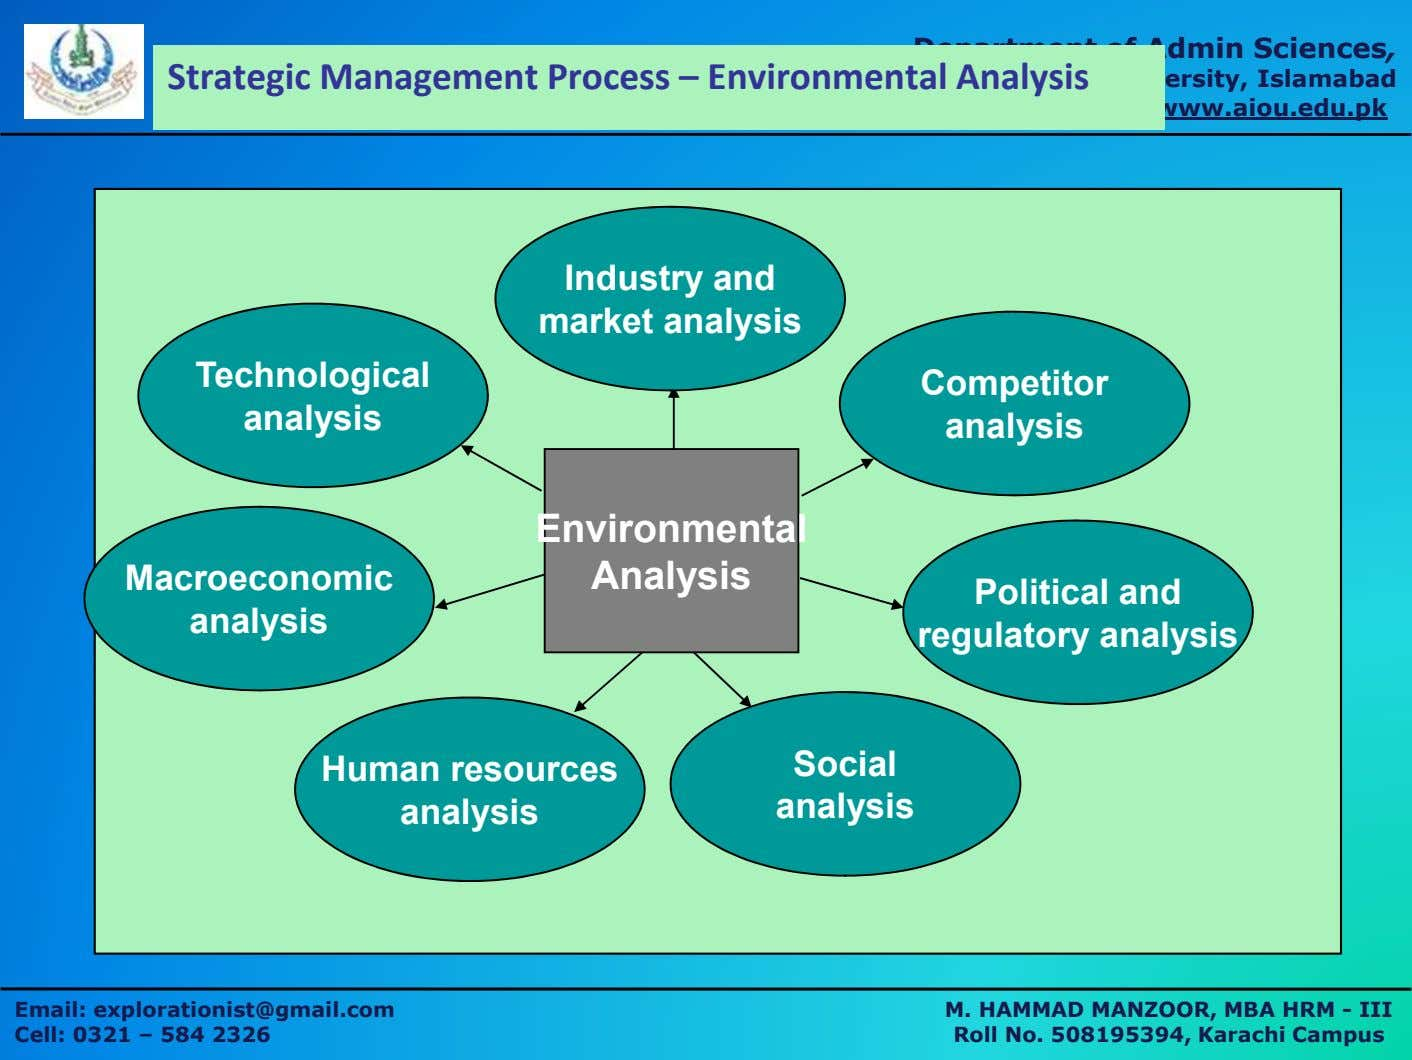 Department of Admin Sciences, Strategic Management Process – Environmental Analysis Allama Iqbal Open University,